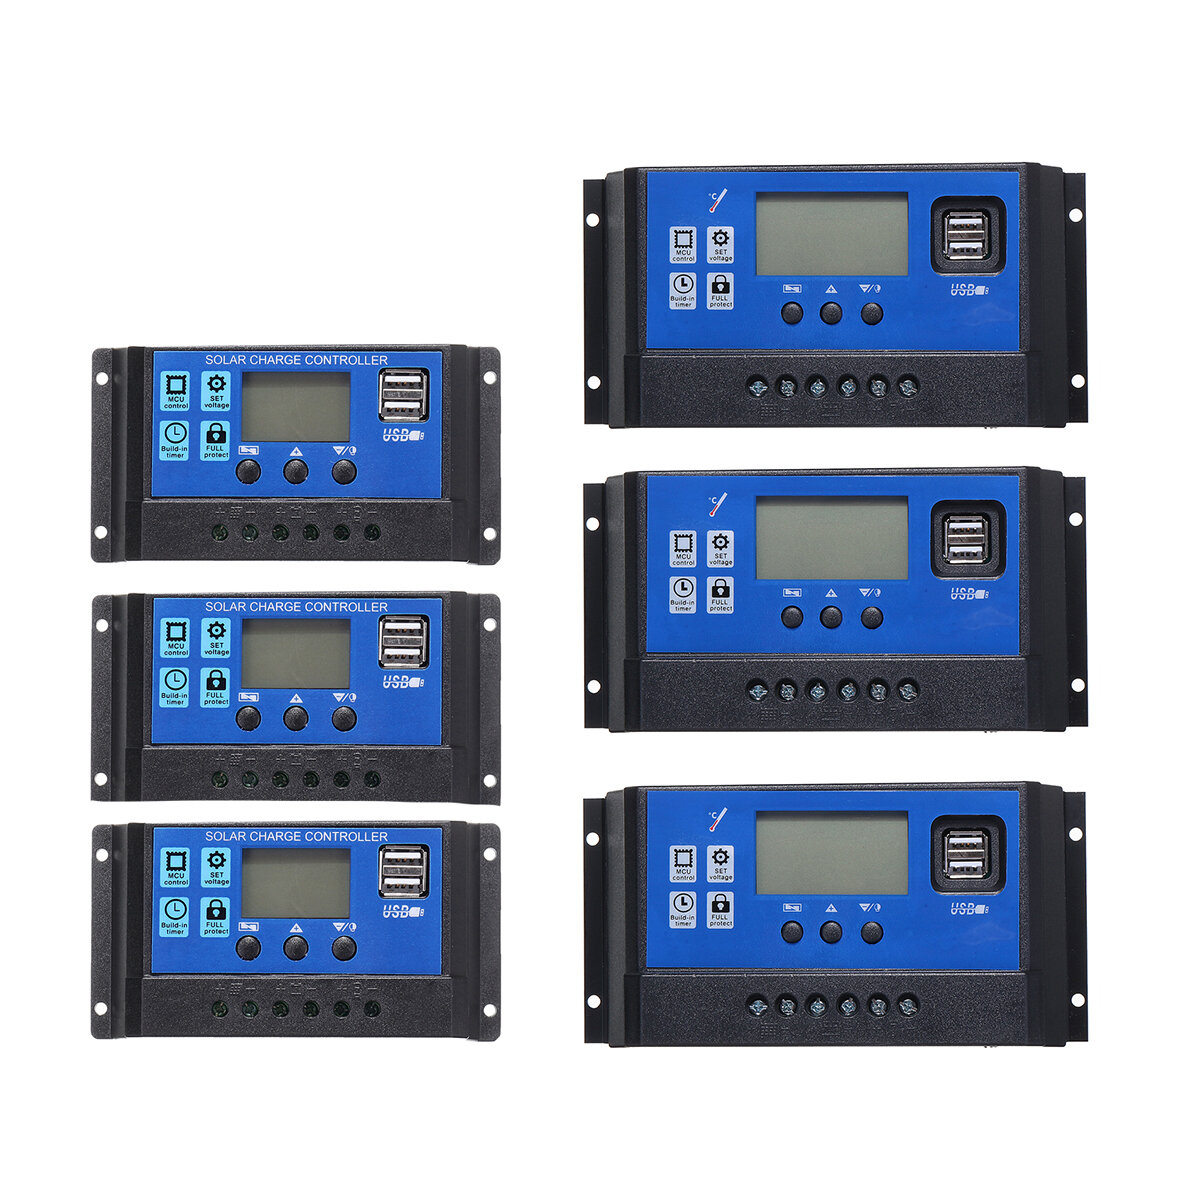 10A-60A 12V/24V Solar Panel Charger Controller Battery Regulator Dual USB LCD Display Solar Charge Controller